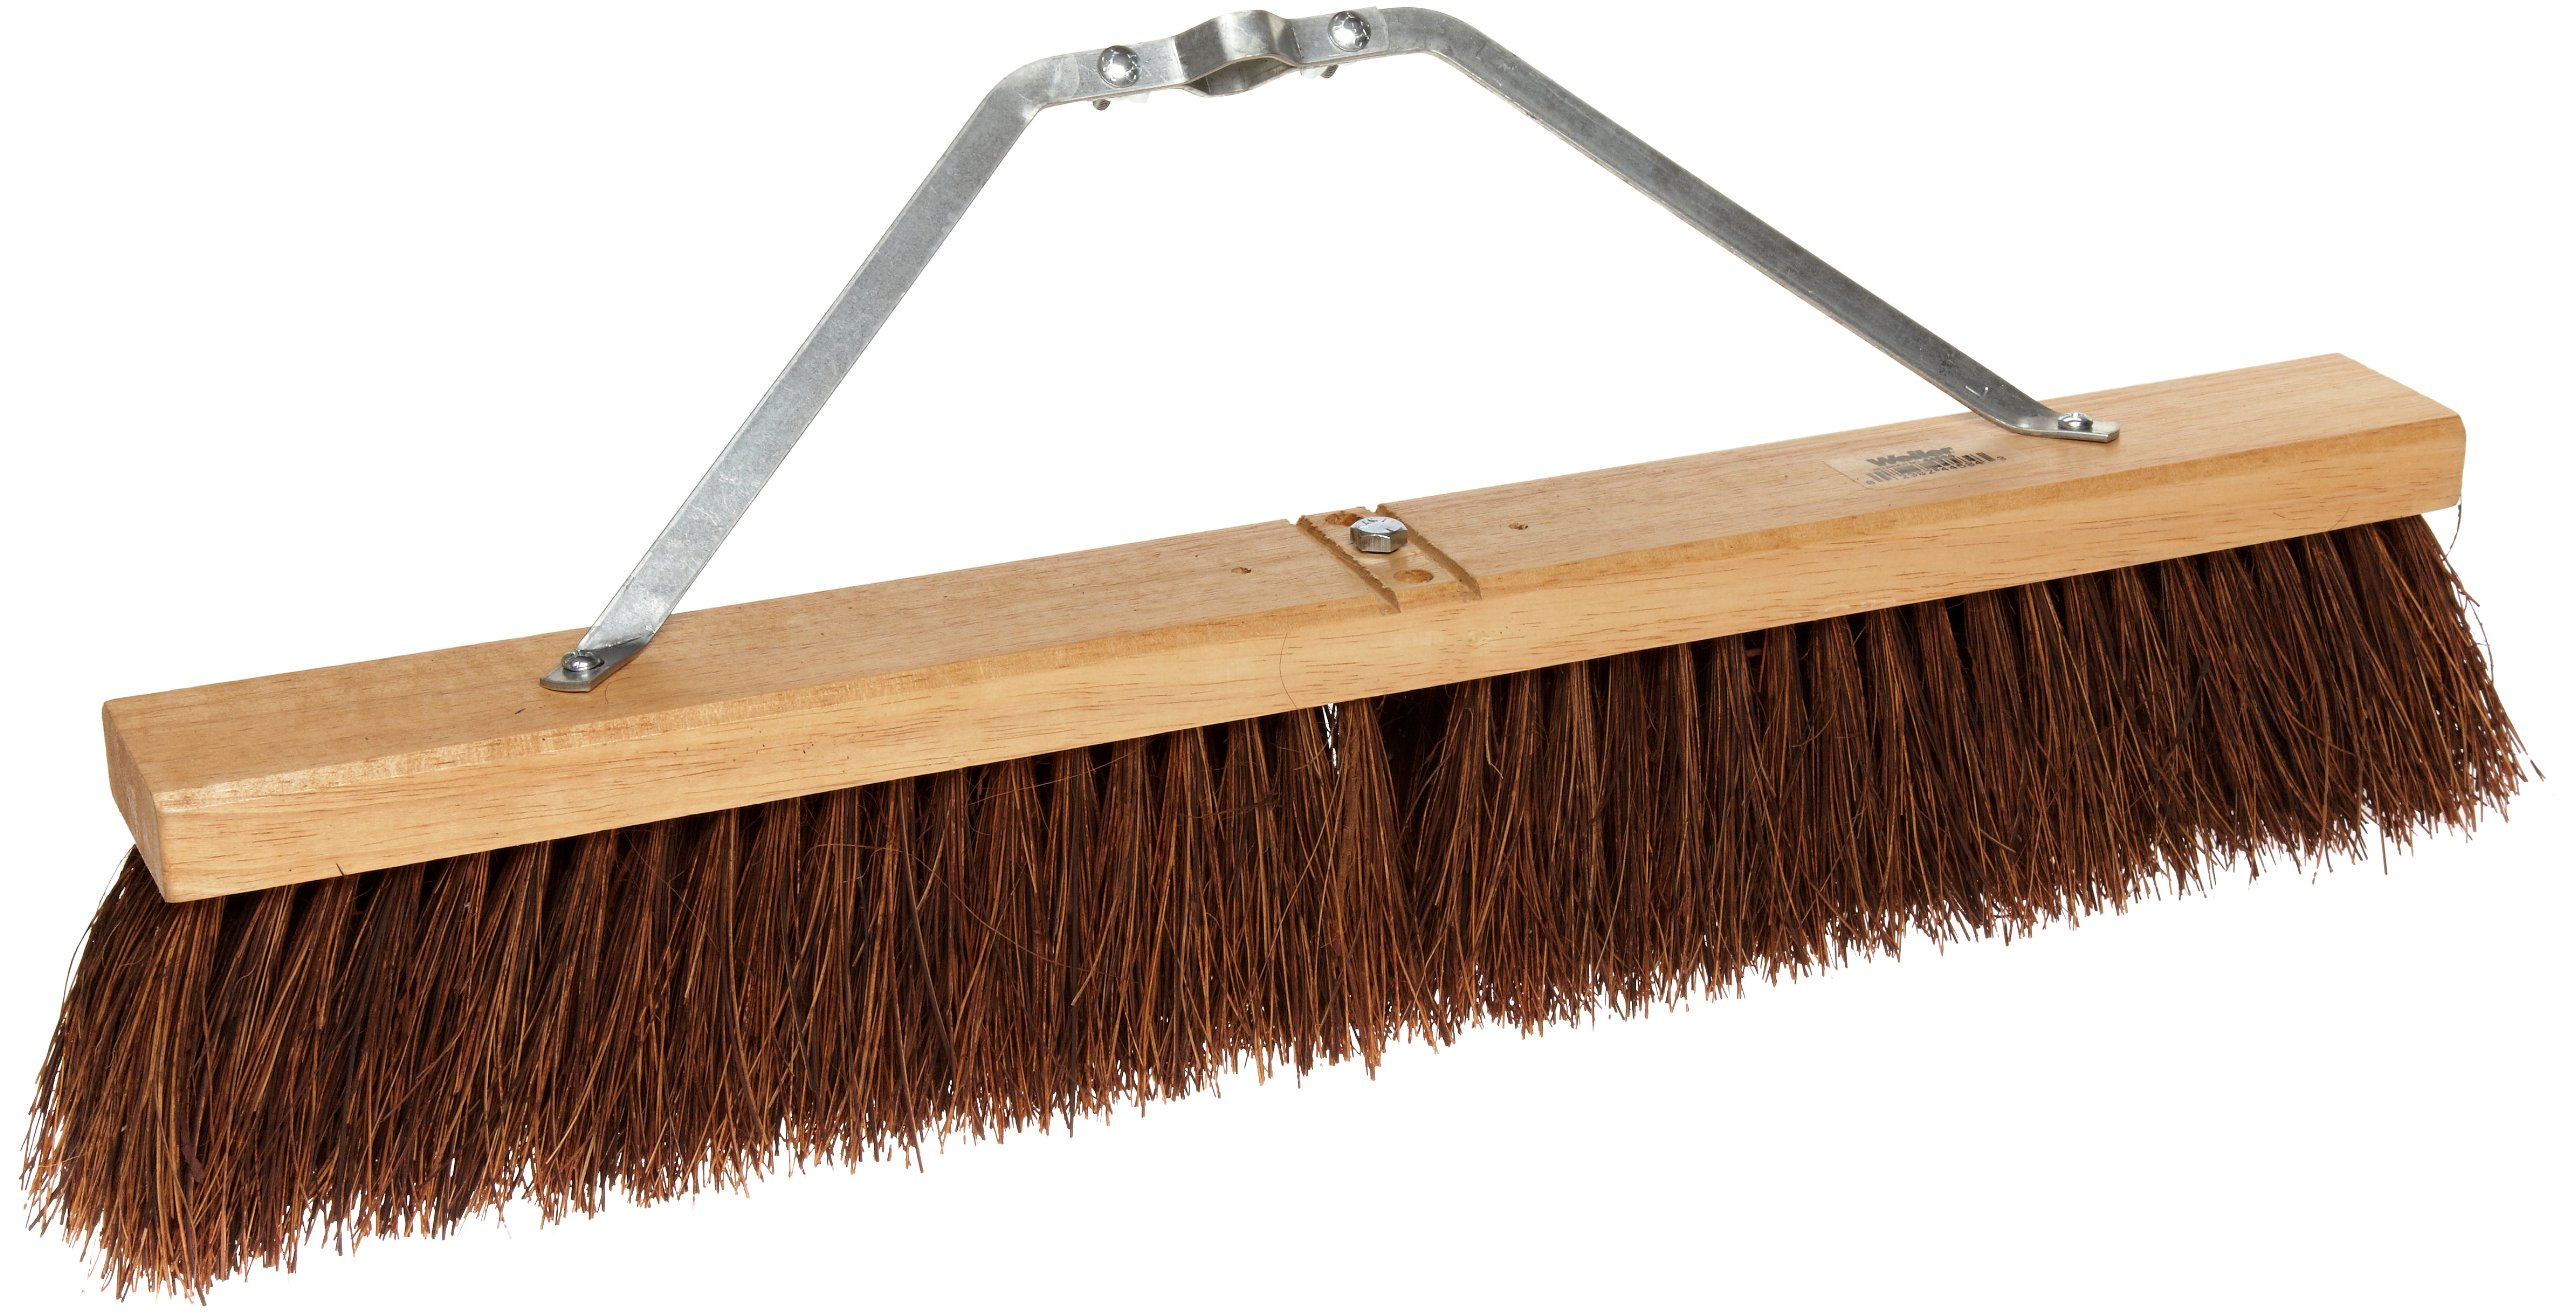 Weiler 44584 Palmyra Fiber Coarse Sweeping Broom with Wood Head, 2-1/2'' Head Width, Natural